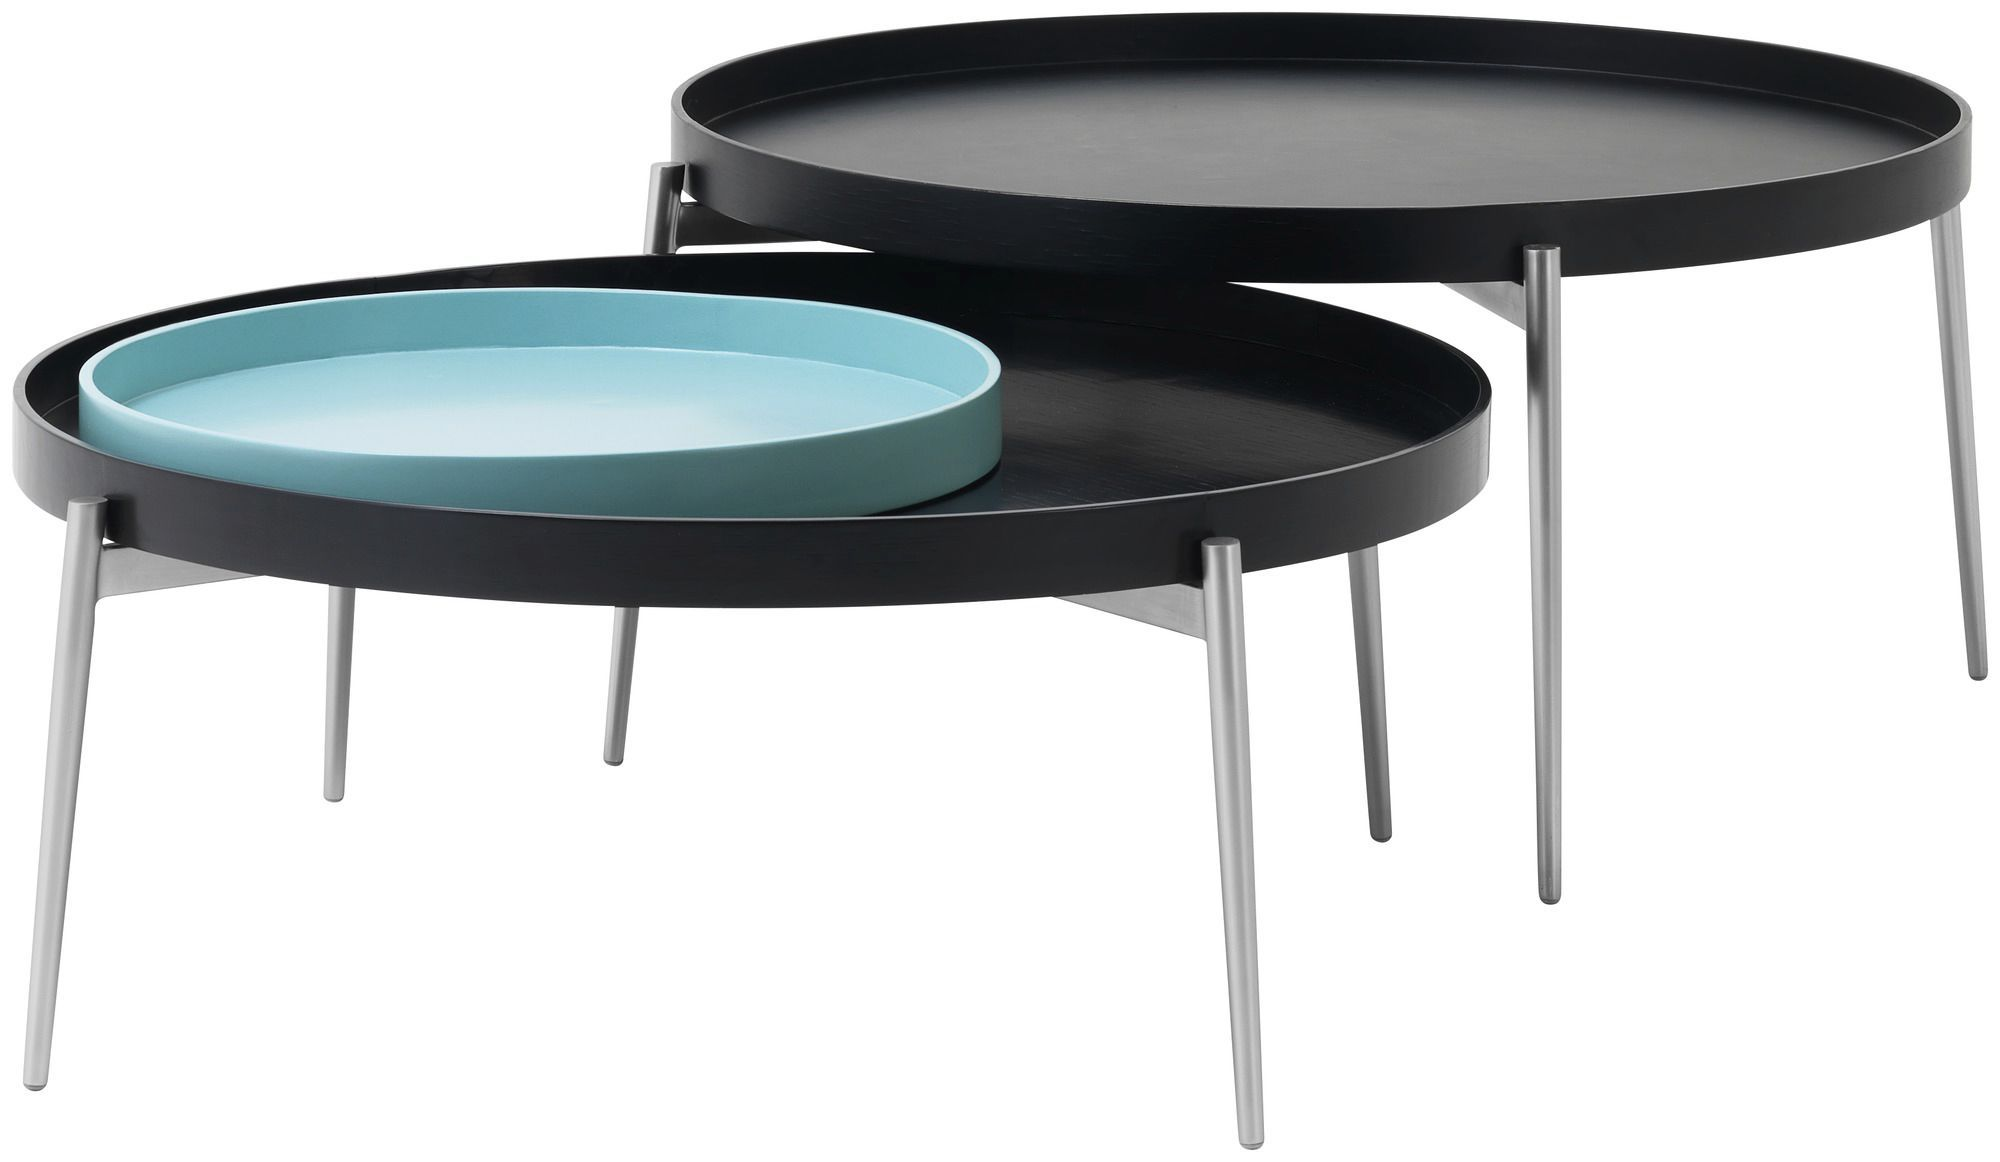 ... Contemporary coffee table / MDF / steel / round VERA BoConcept